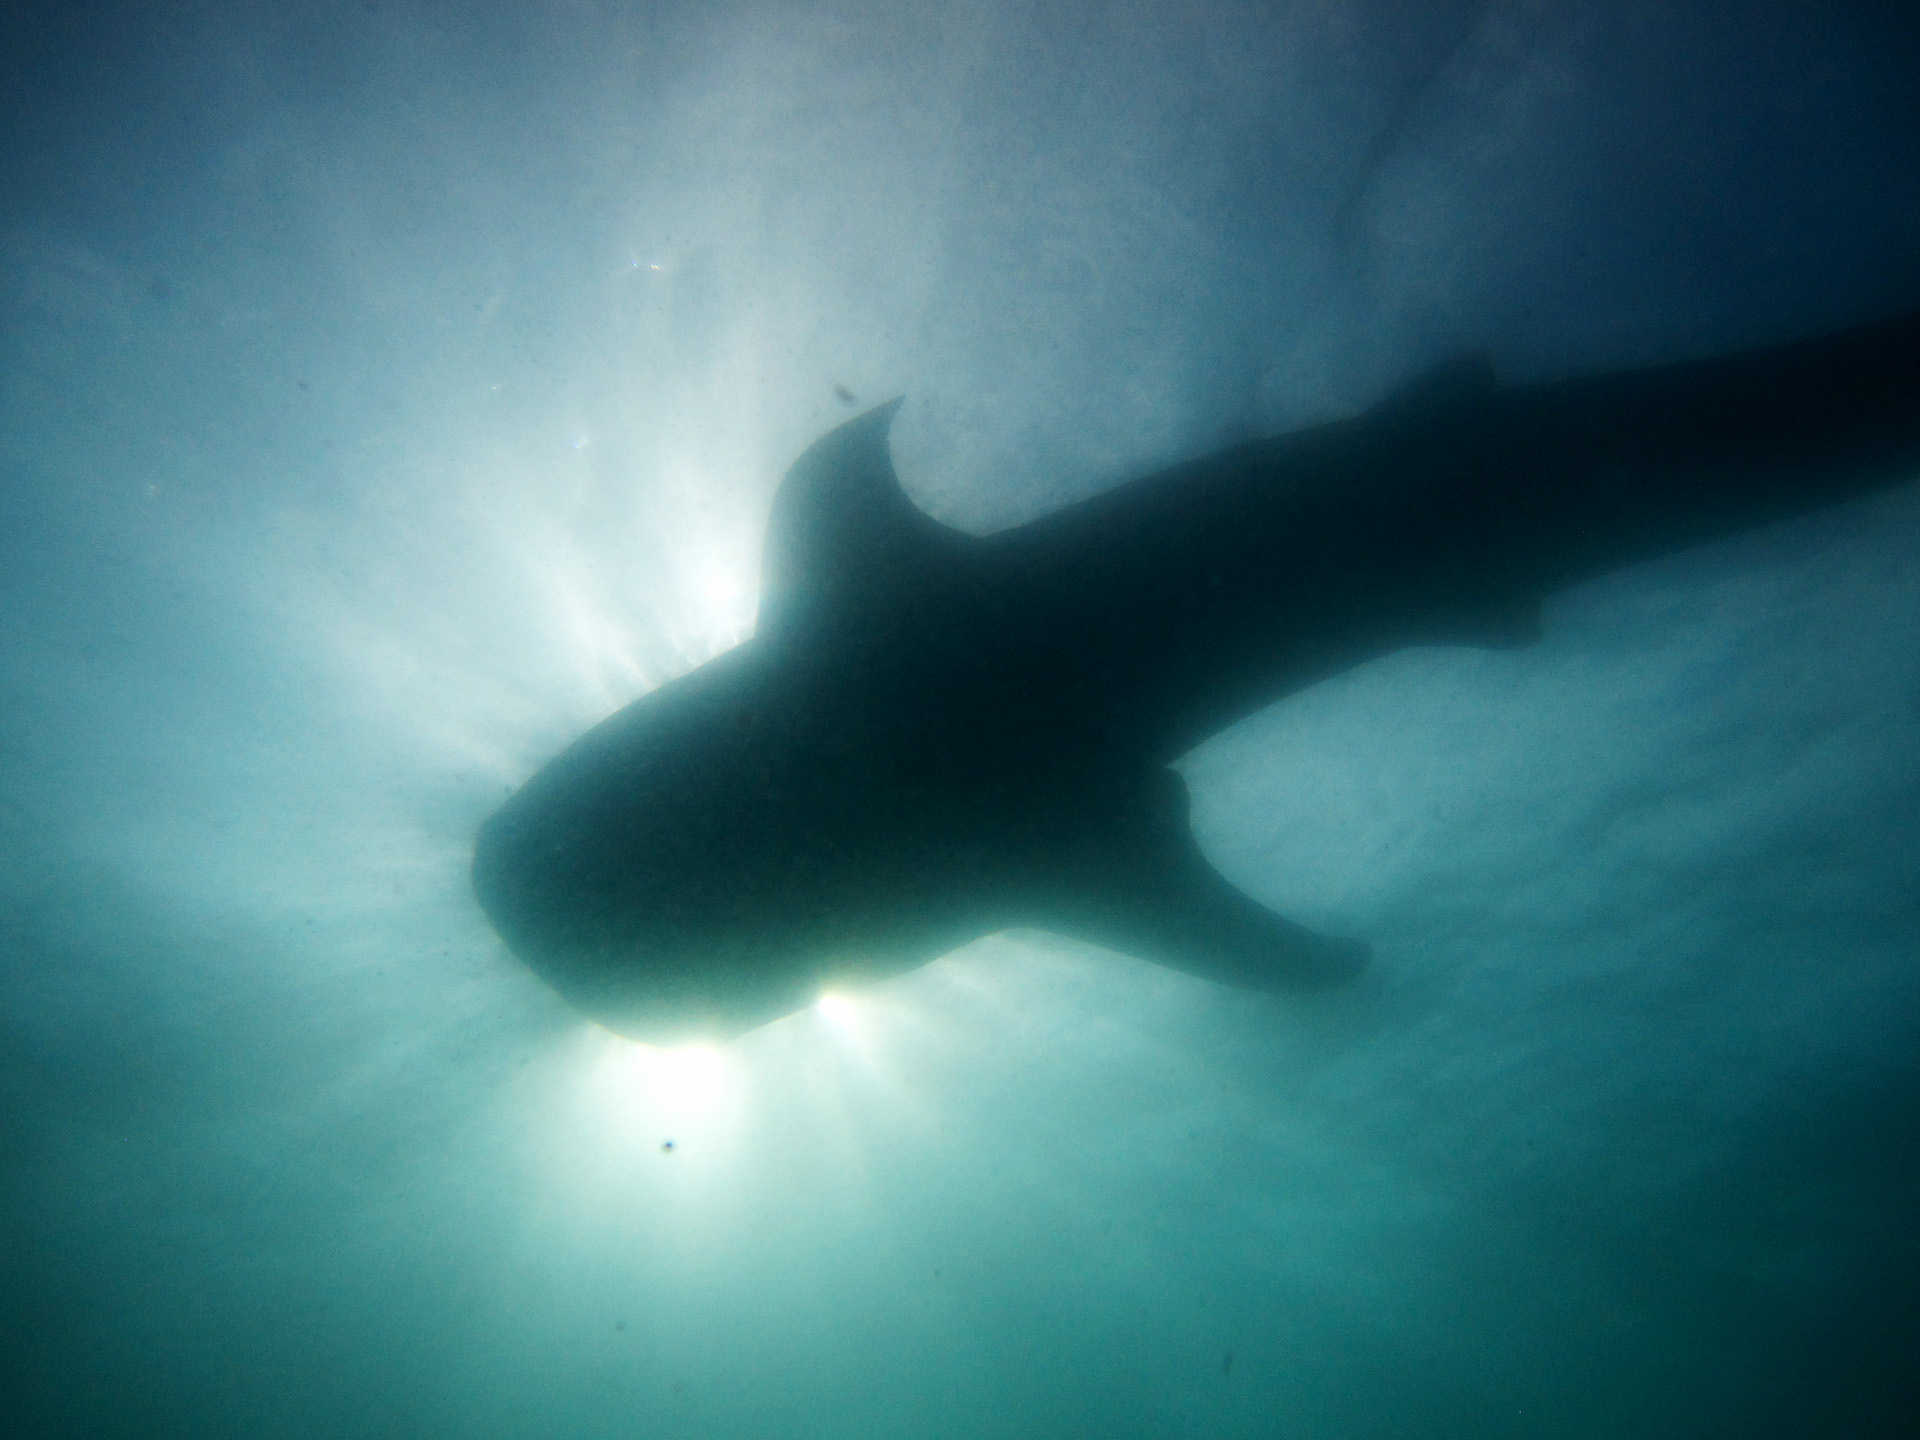 Whale Shark silhouette, Oslob, Philippines.